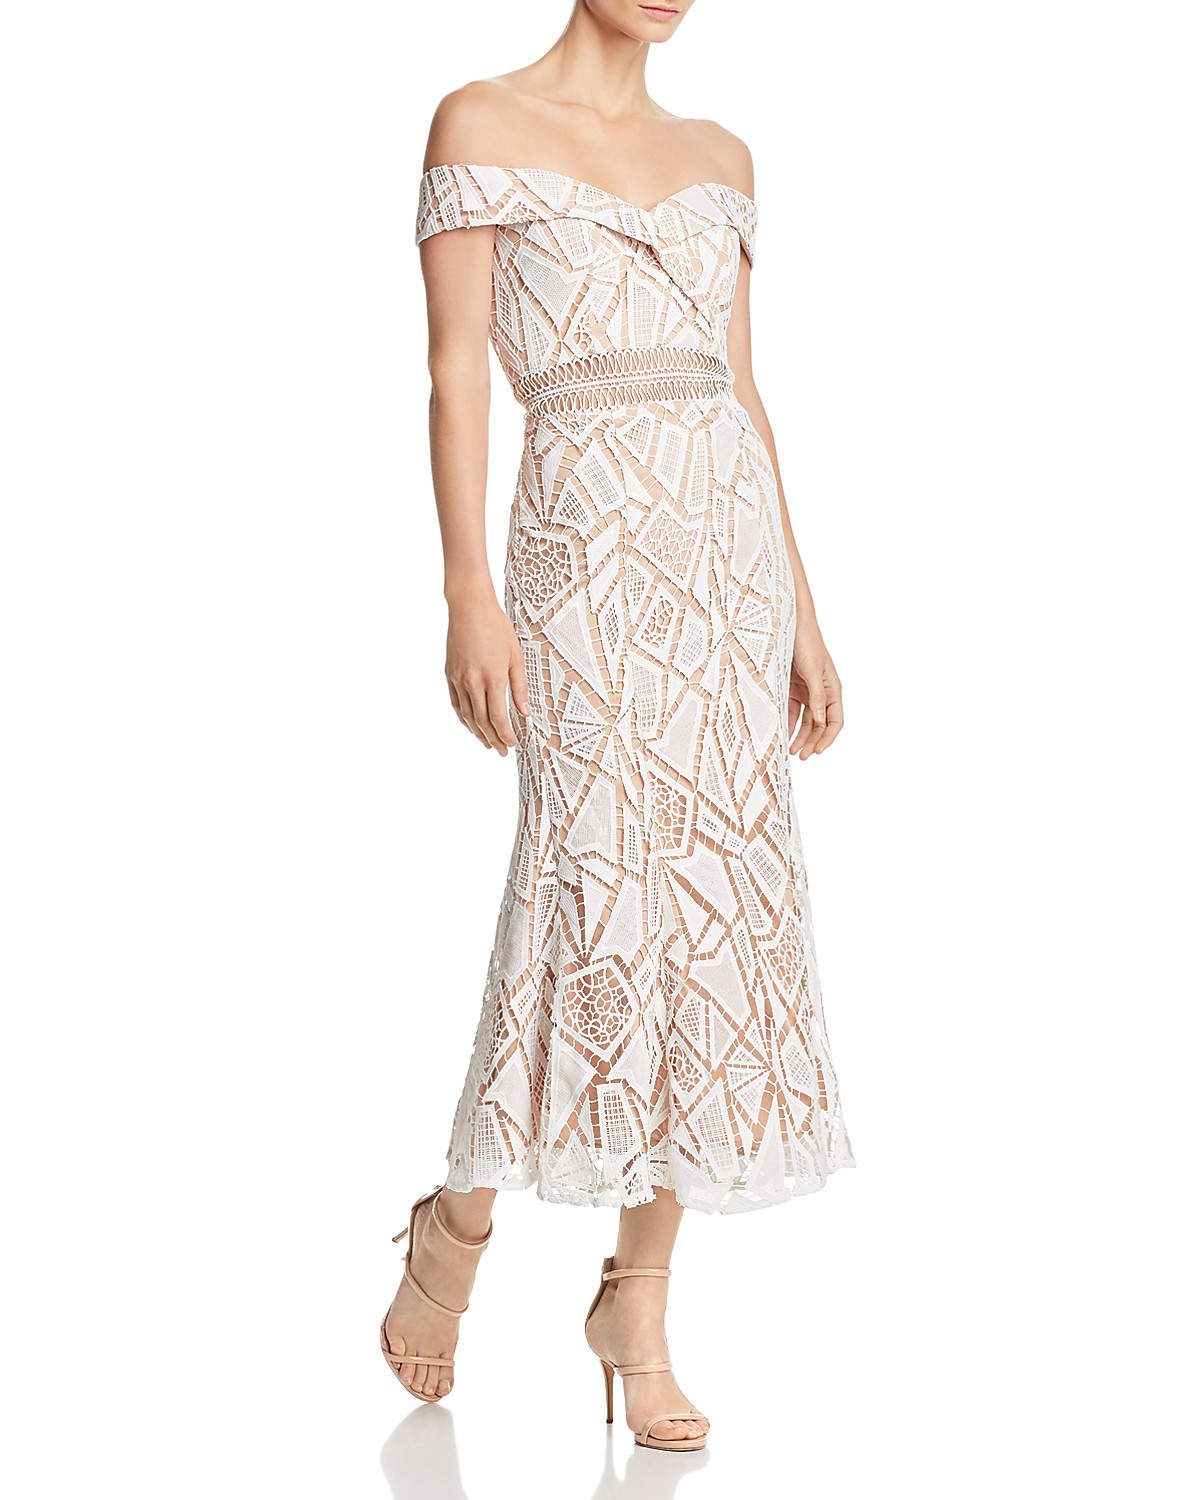 Jarlo Off-the-Shoulder Lace Midi Dress